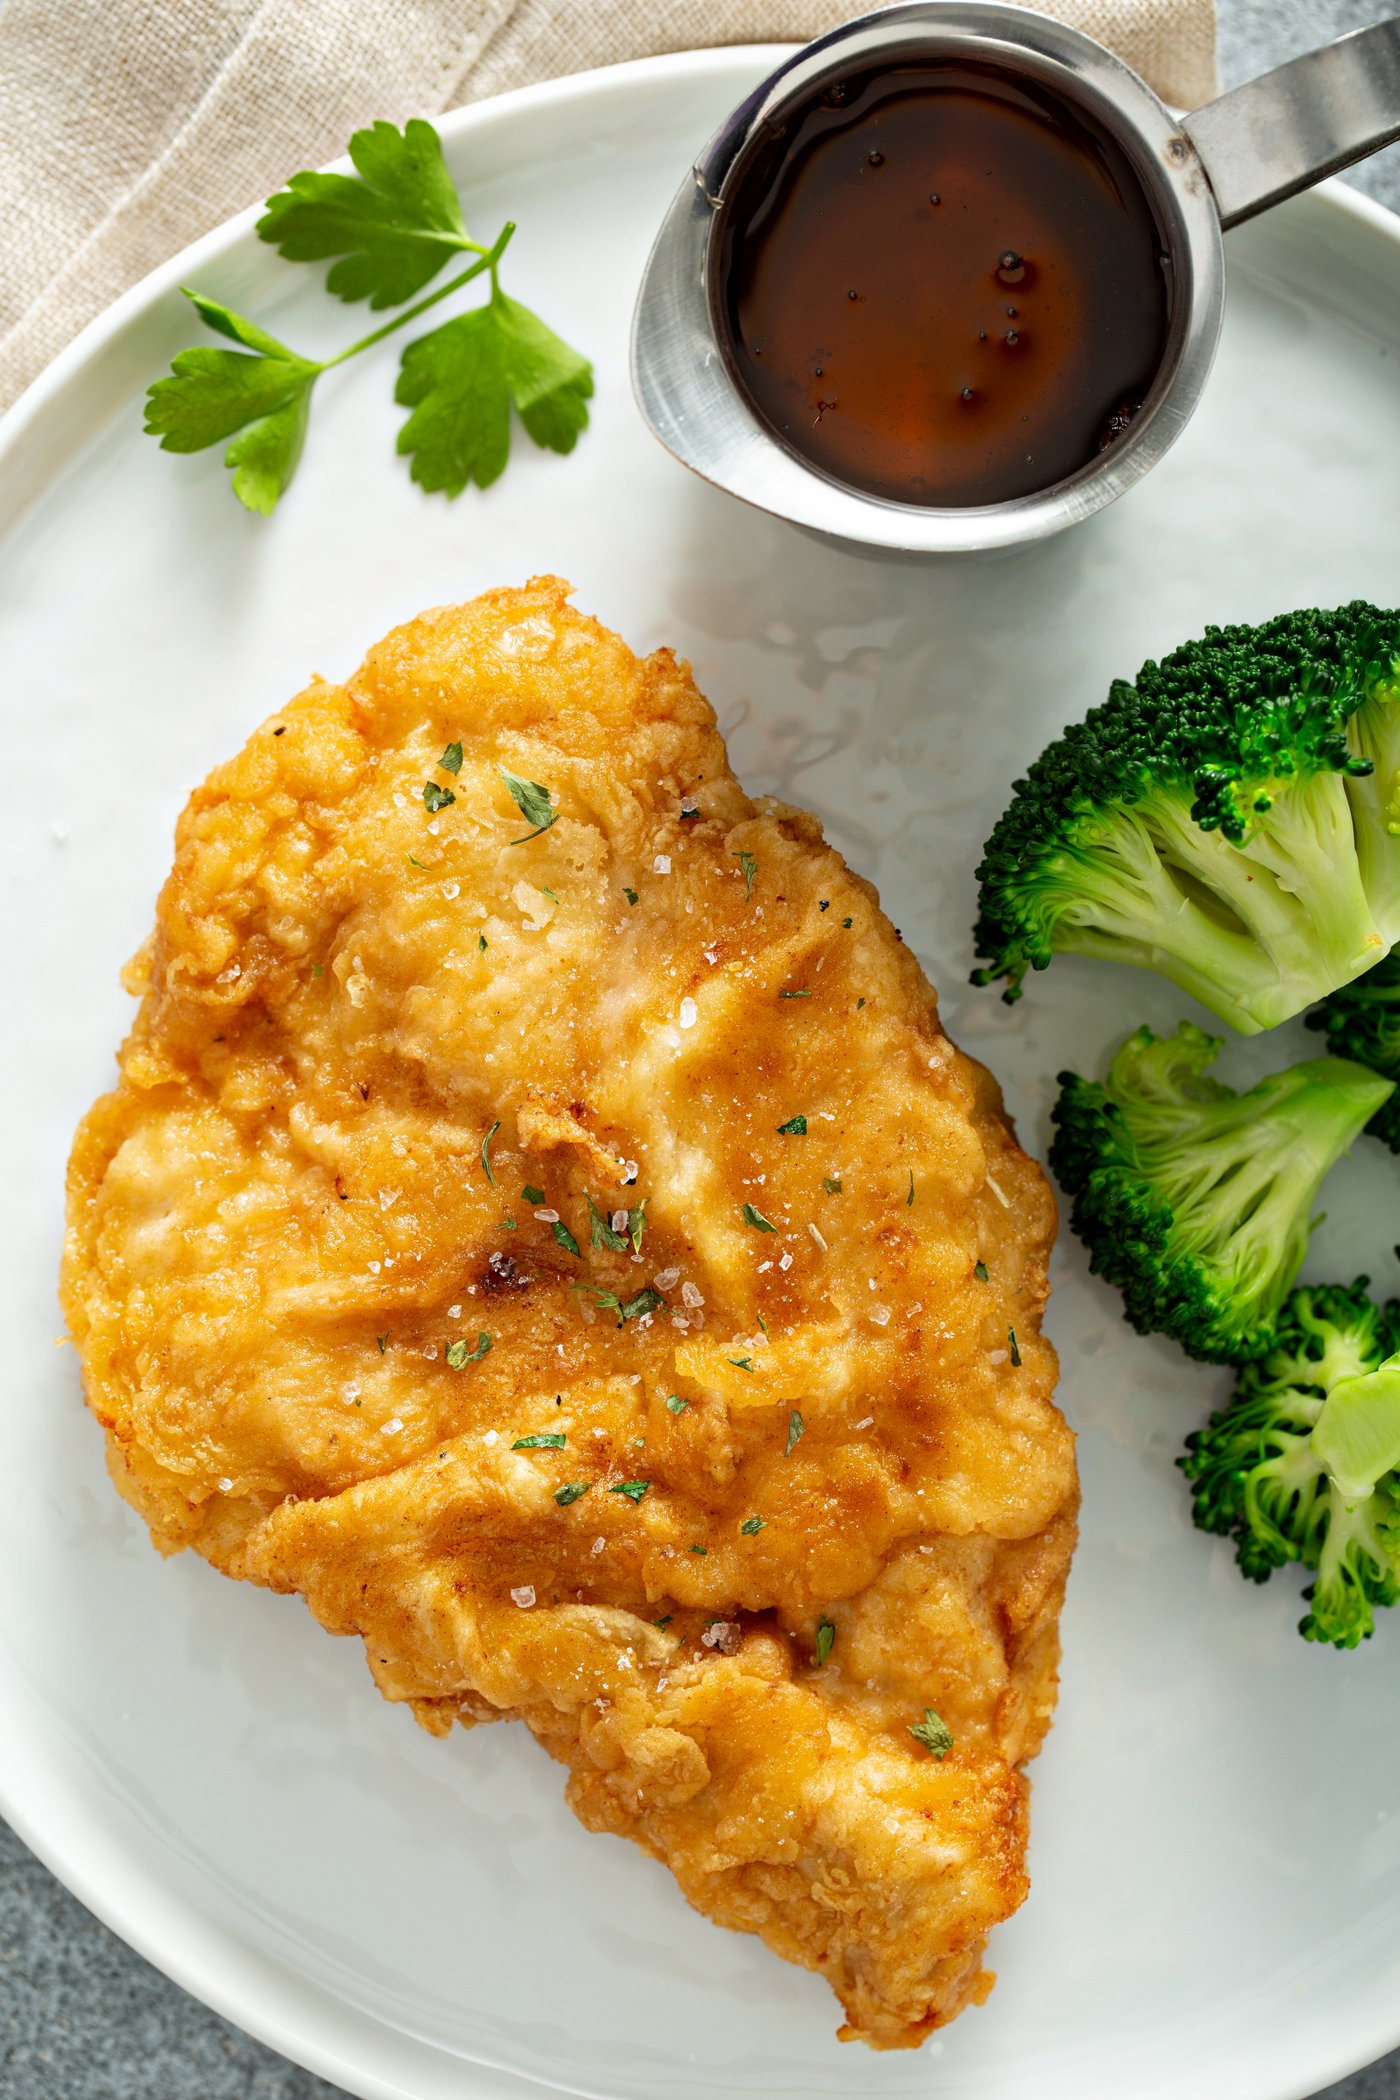 A chicken breast that has been fried to a golden brown, resting on a white dinner plate. There is also steamed broccoli next to the chicken and a small pitcher of sauce.